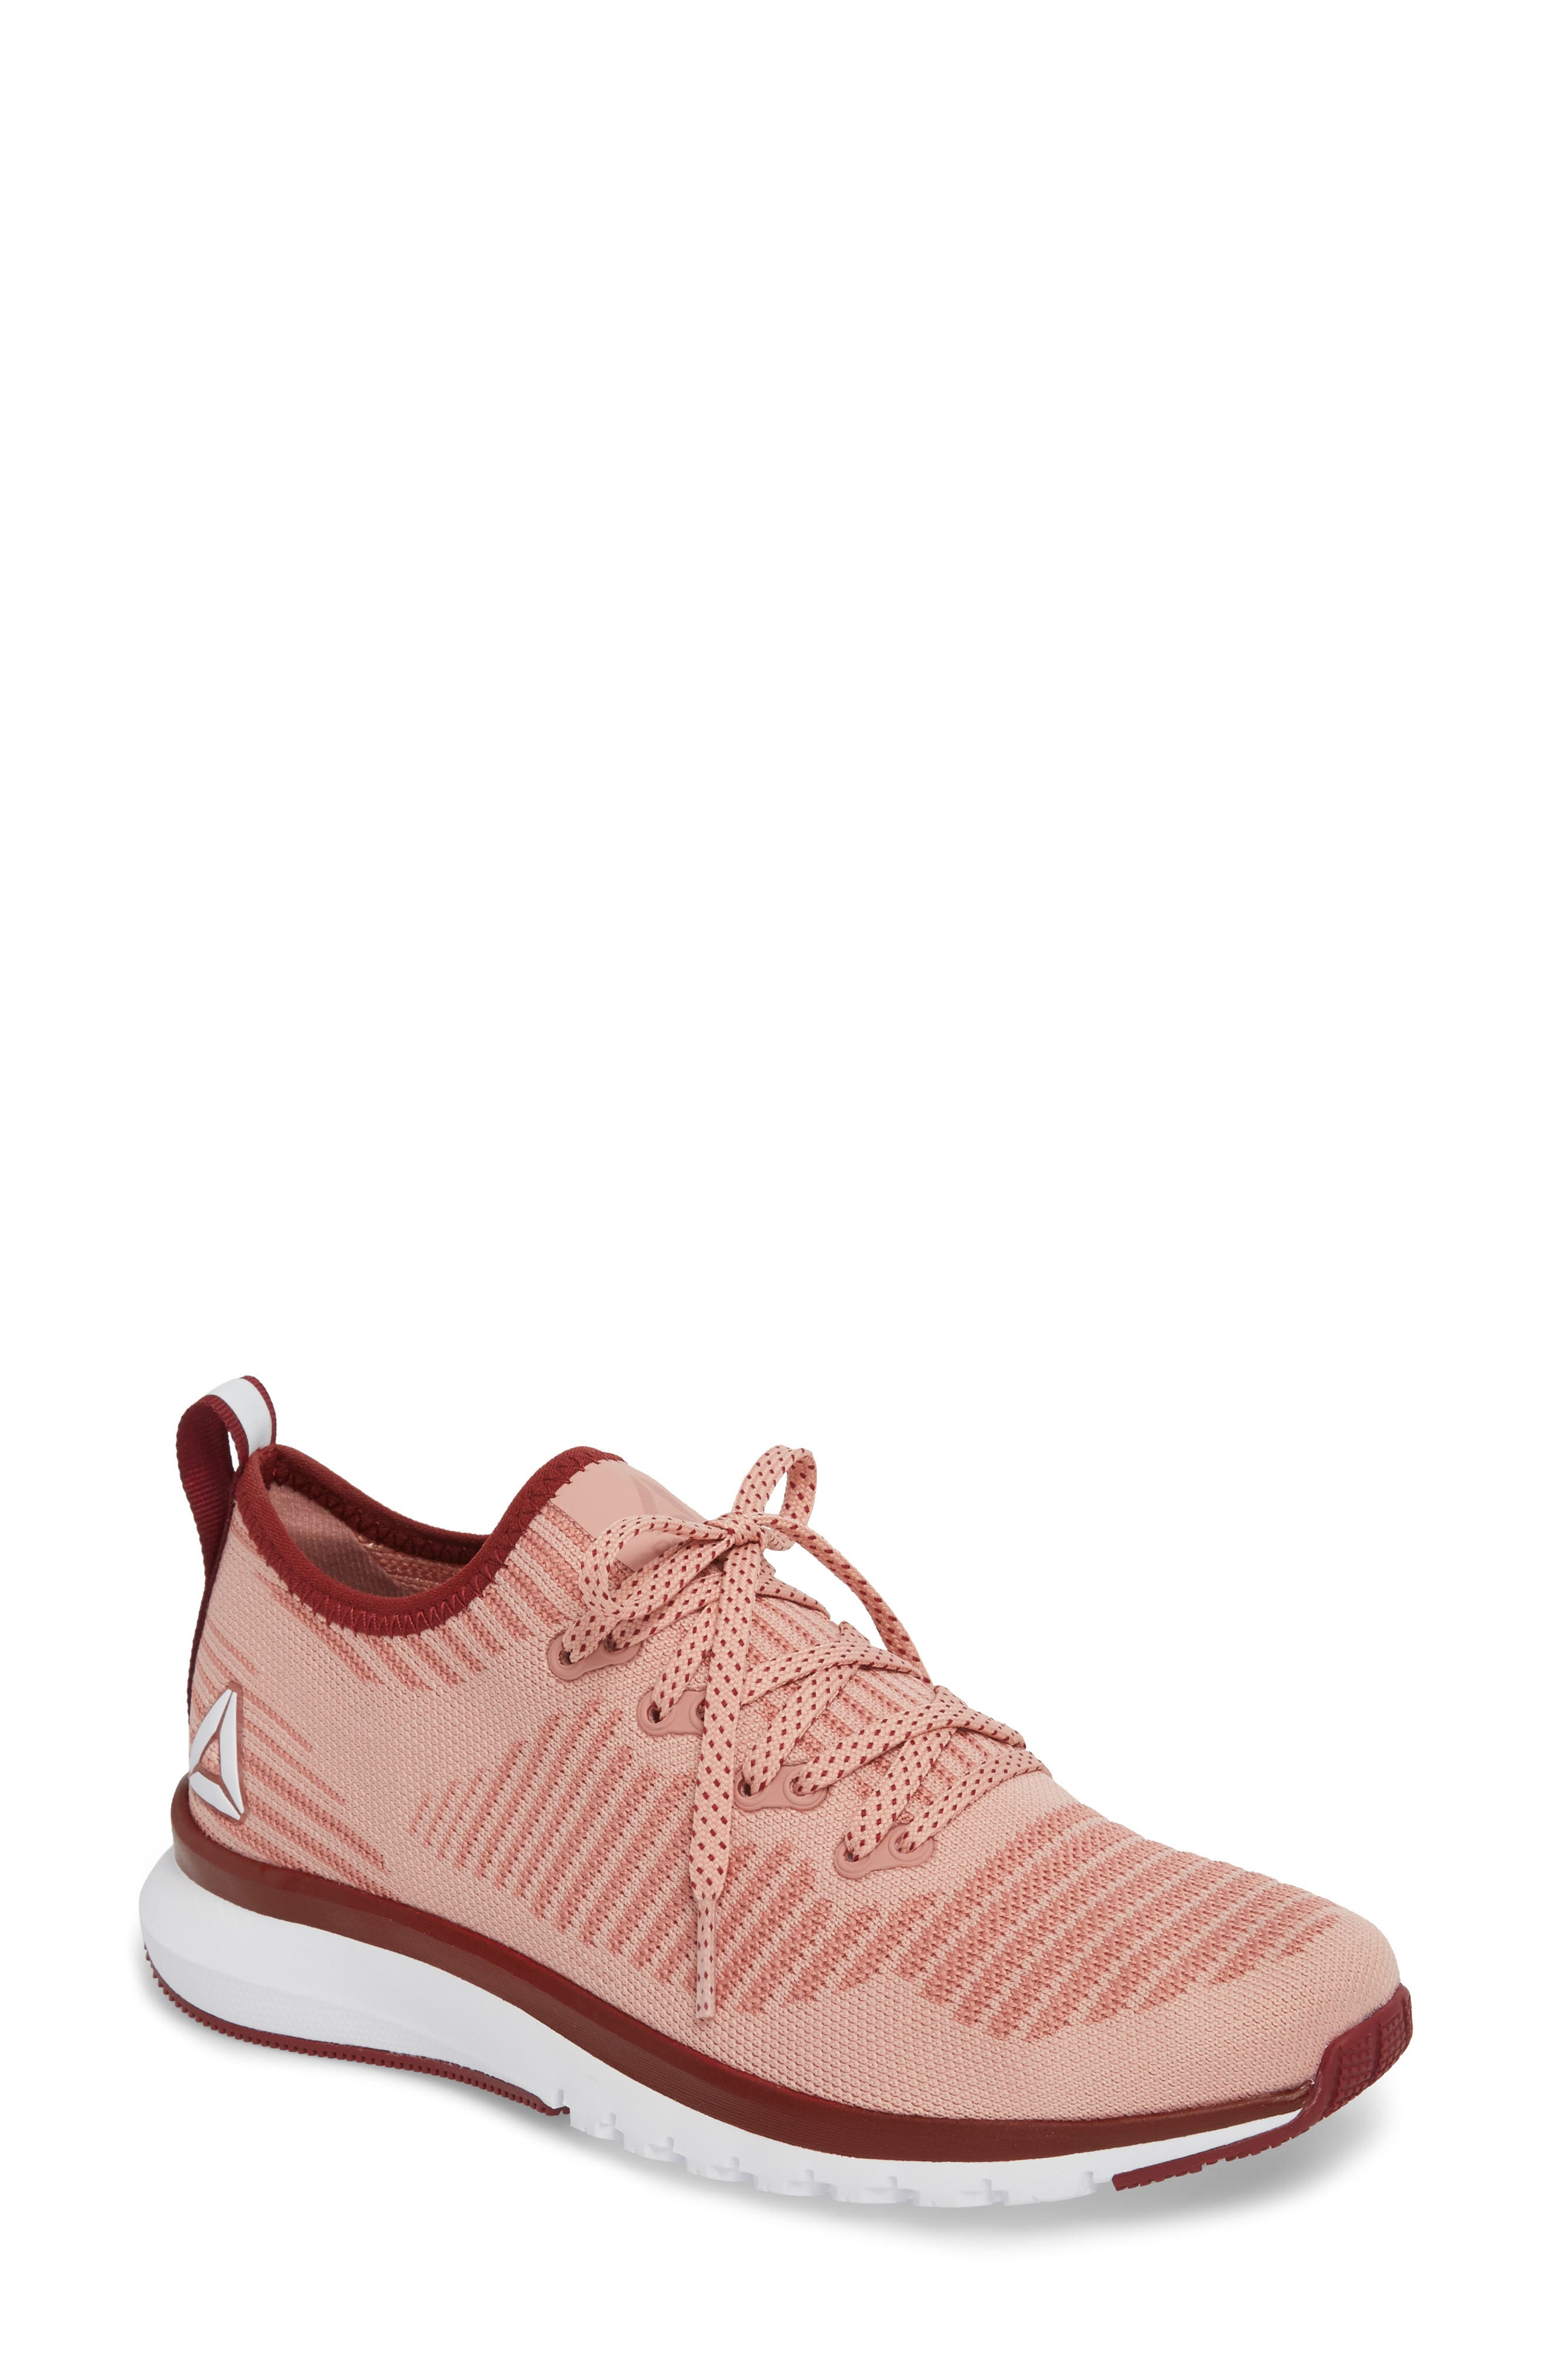 Print Run Smooth Ultra Knit Running Shoe,                         Main,                         color, Chalk Pink/ Urban Maroon